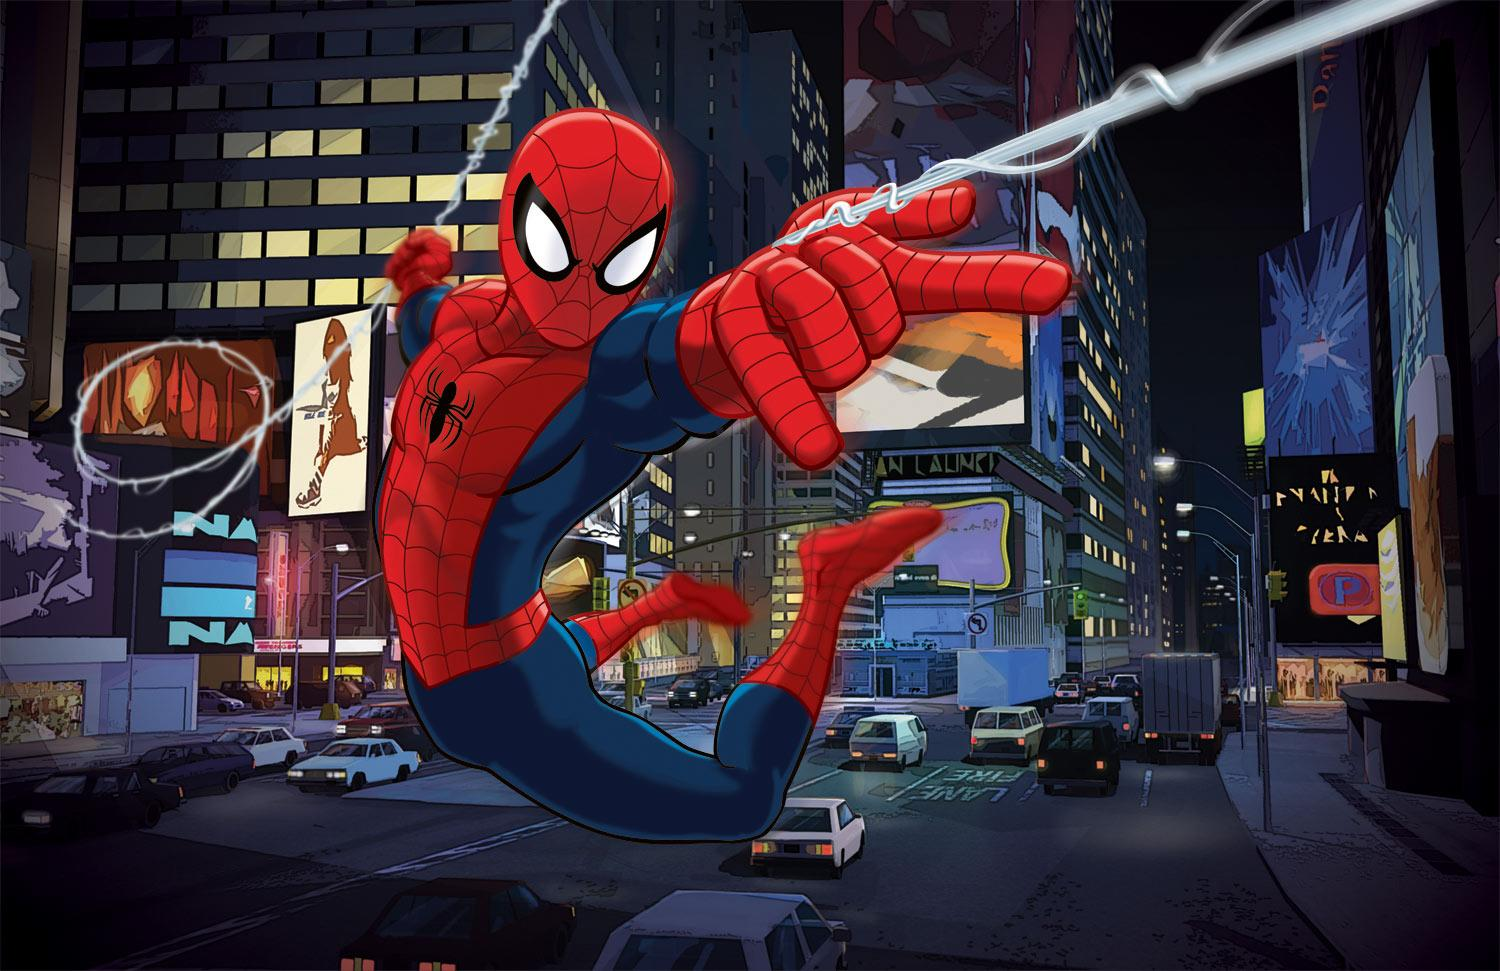 The Lego Movie directors are working on an animated Spider-Man film for Sony